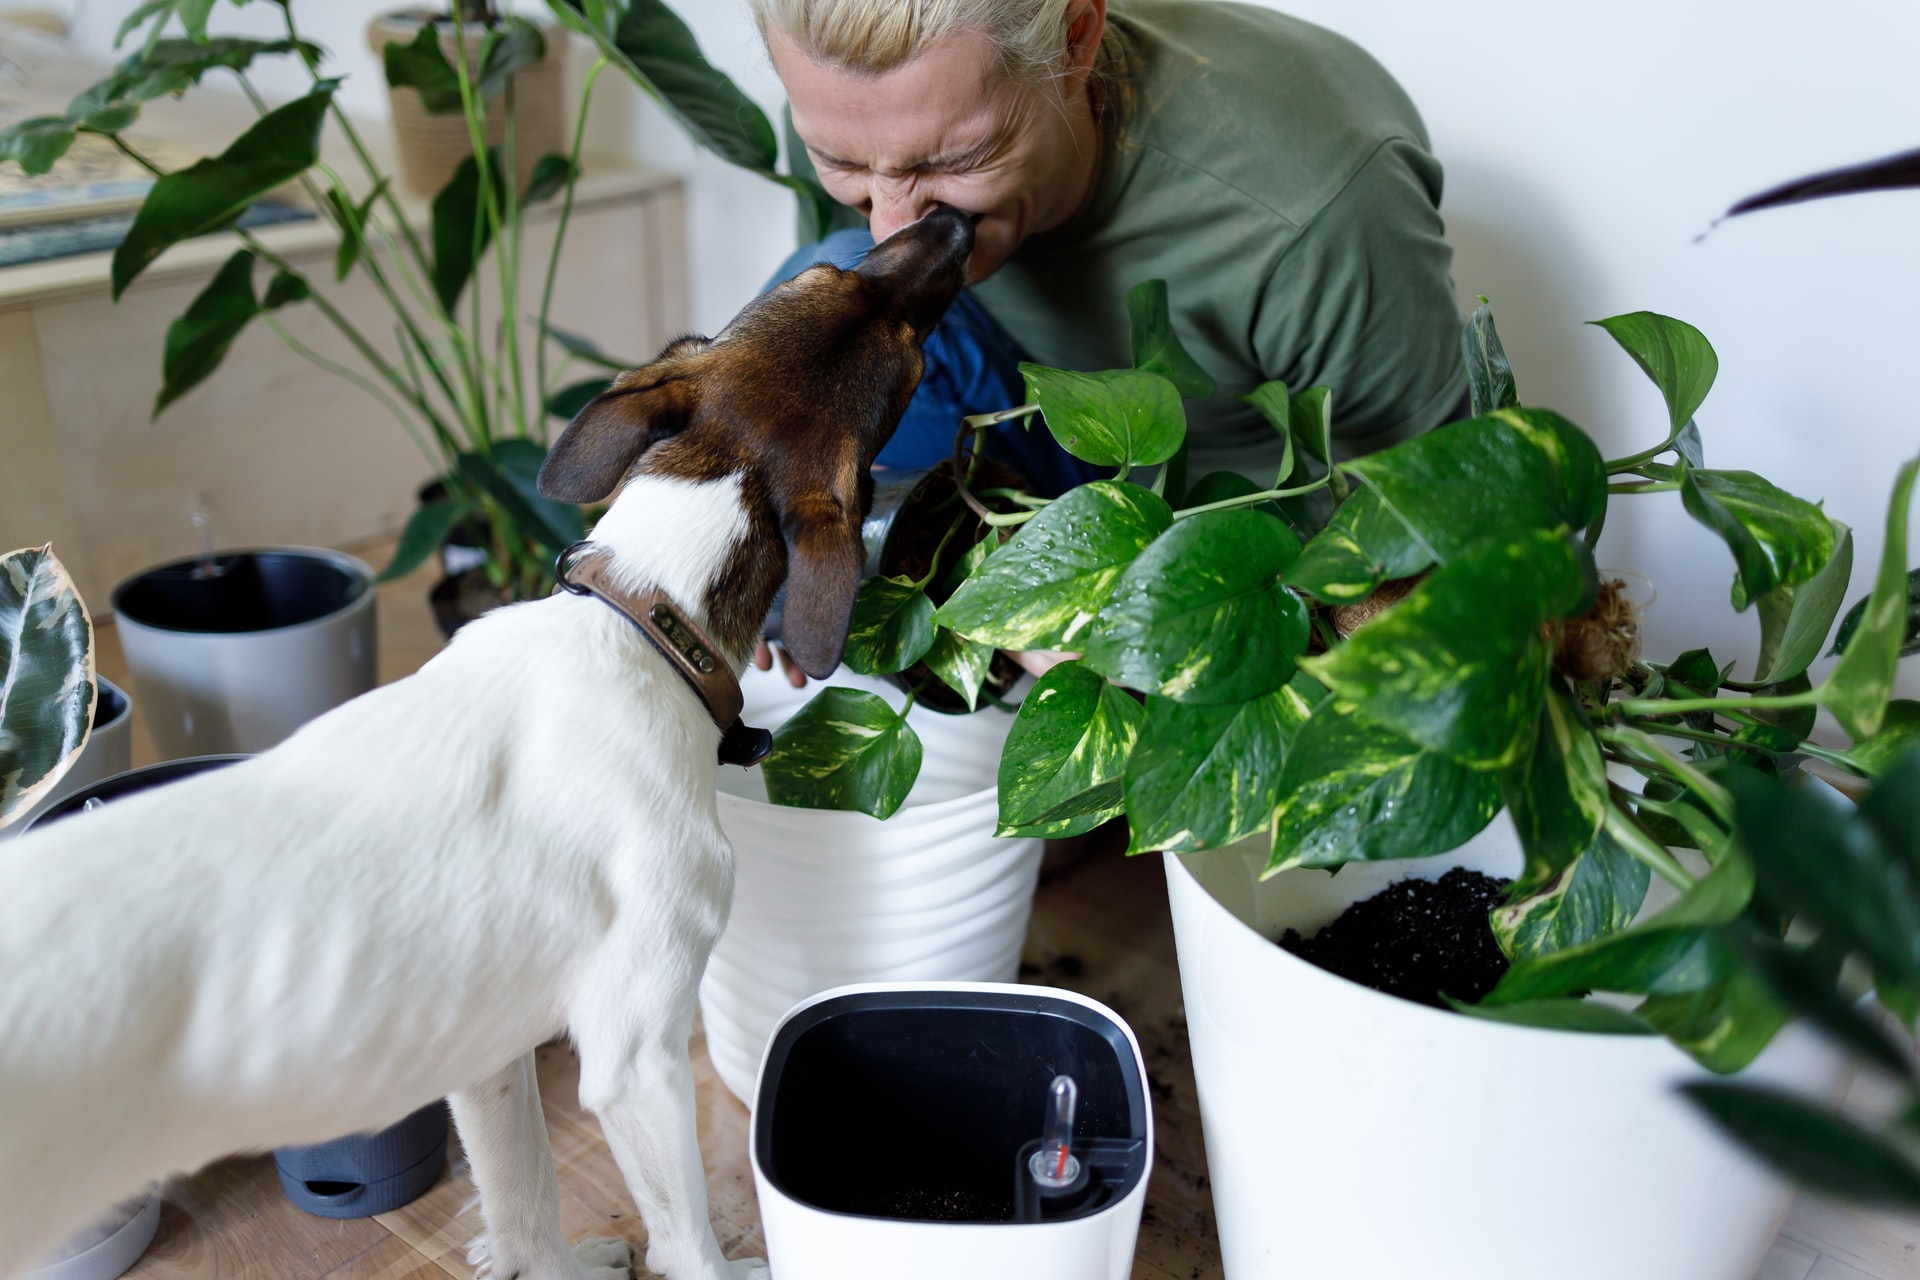 Man in green jacket surrounded by plants is being kissed by a dog